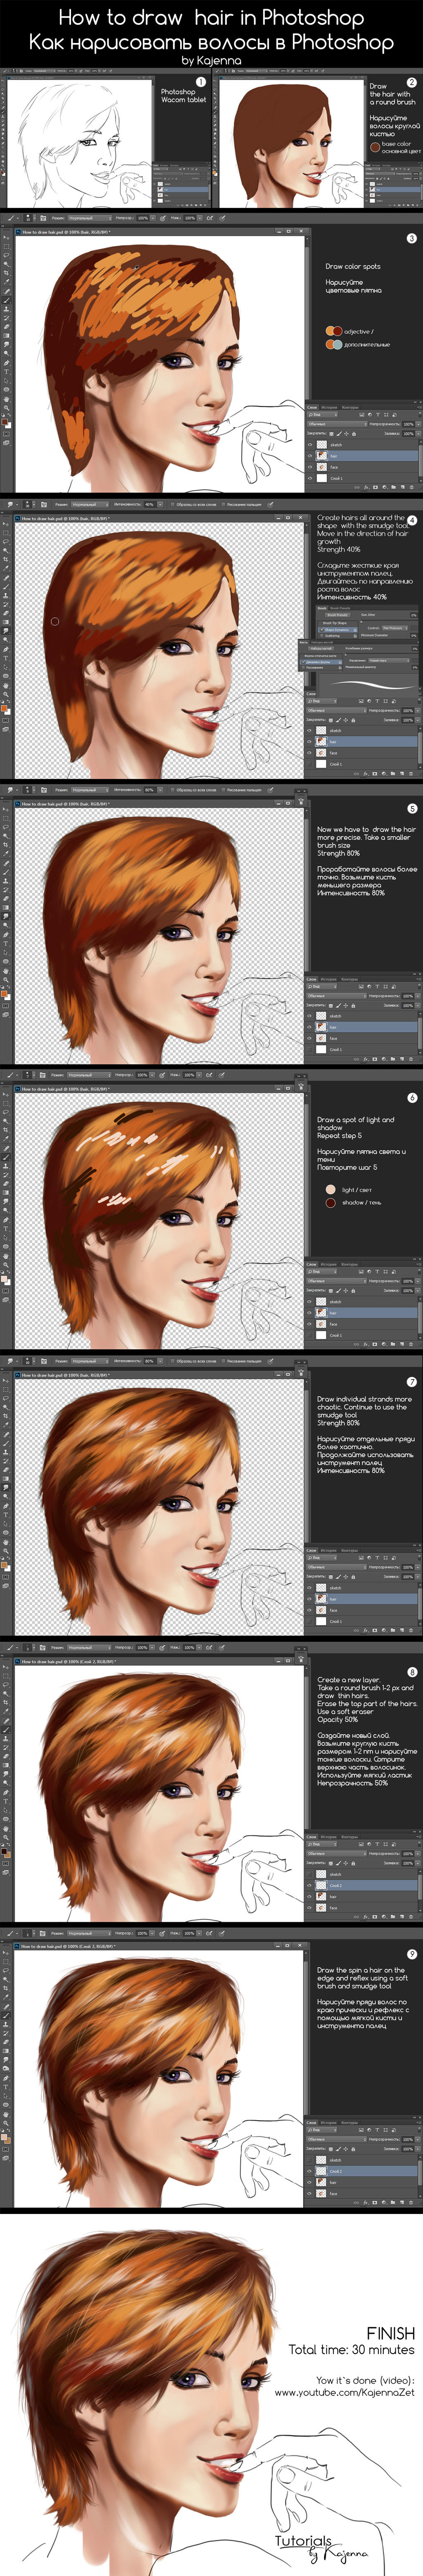 how to draw furry hair in photoshop